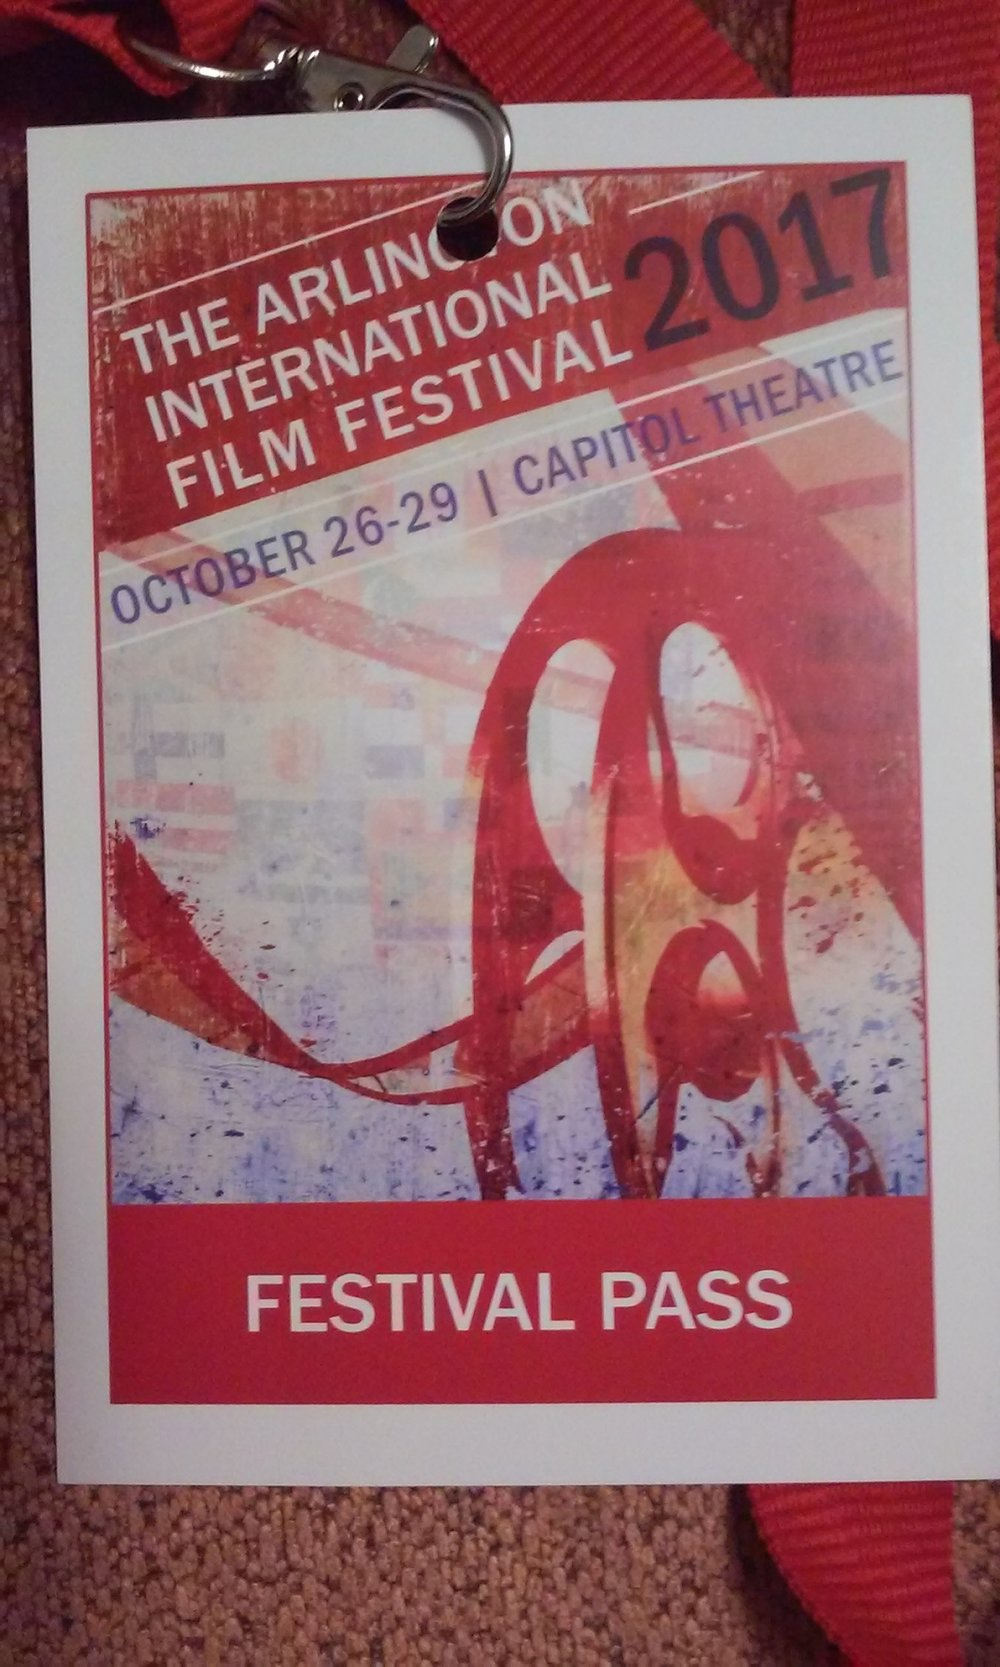 A Festival Pass entitles you to all film screenings, panel discussions as well as the Special Opening Night Screening and Reception.*Please note that passes will NOT be mailed. Pick up your pass at the AIFF table in the lobby of the Capitol Theatre on October 26th after 5 PM.AIFF...much more than a film festival...a celebration of the arts and a platform for recognizing our common global human experience.See you at the Capitol Theatre! -